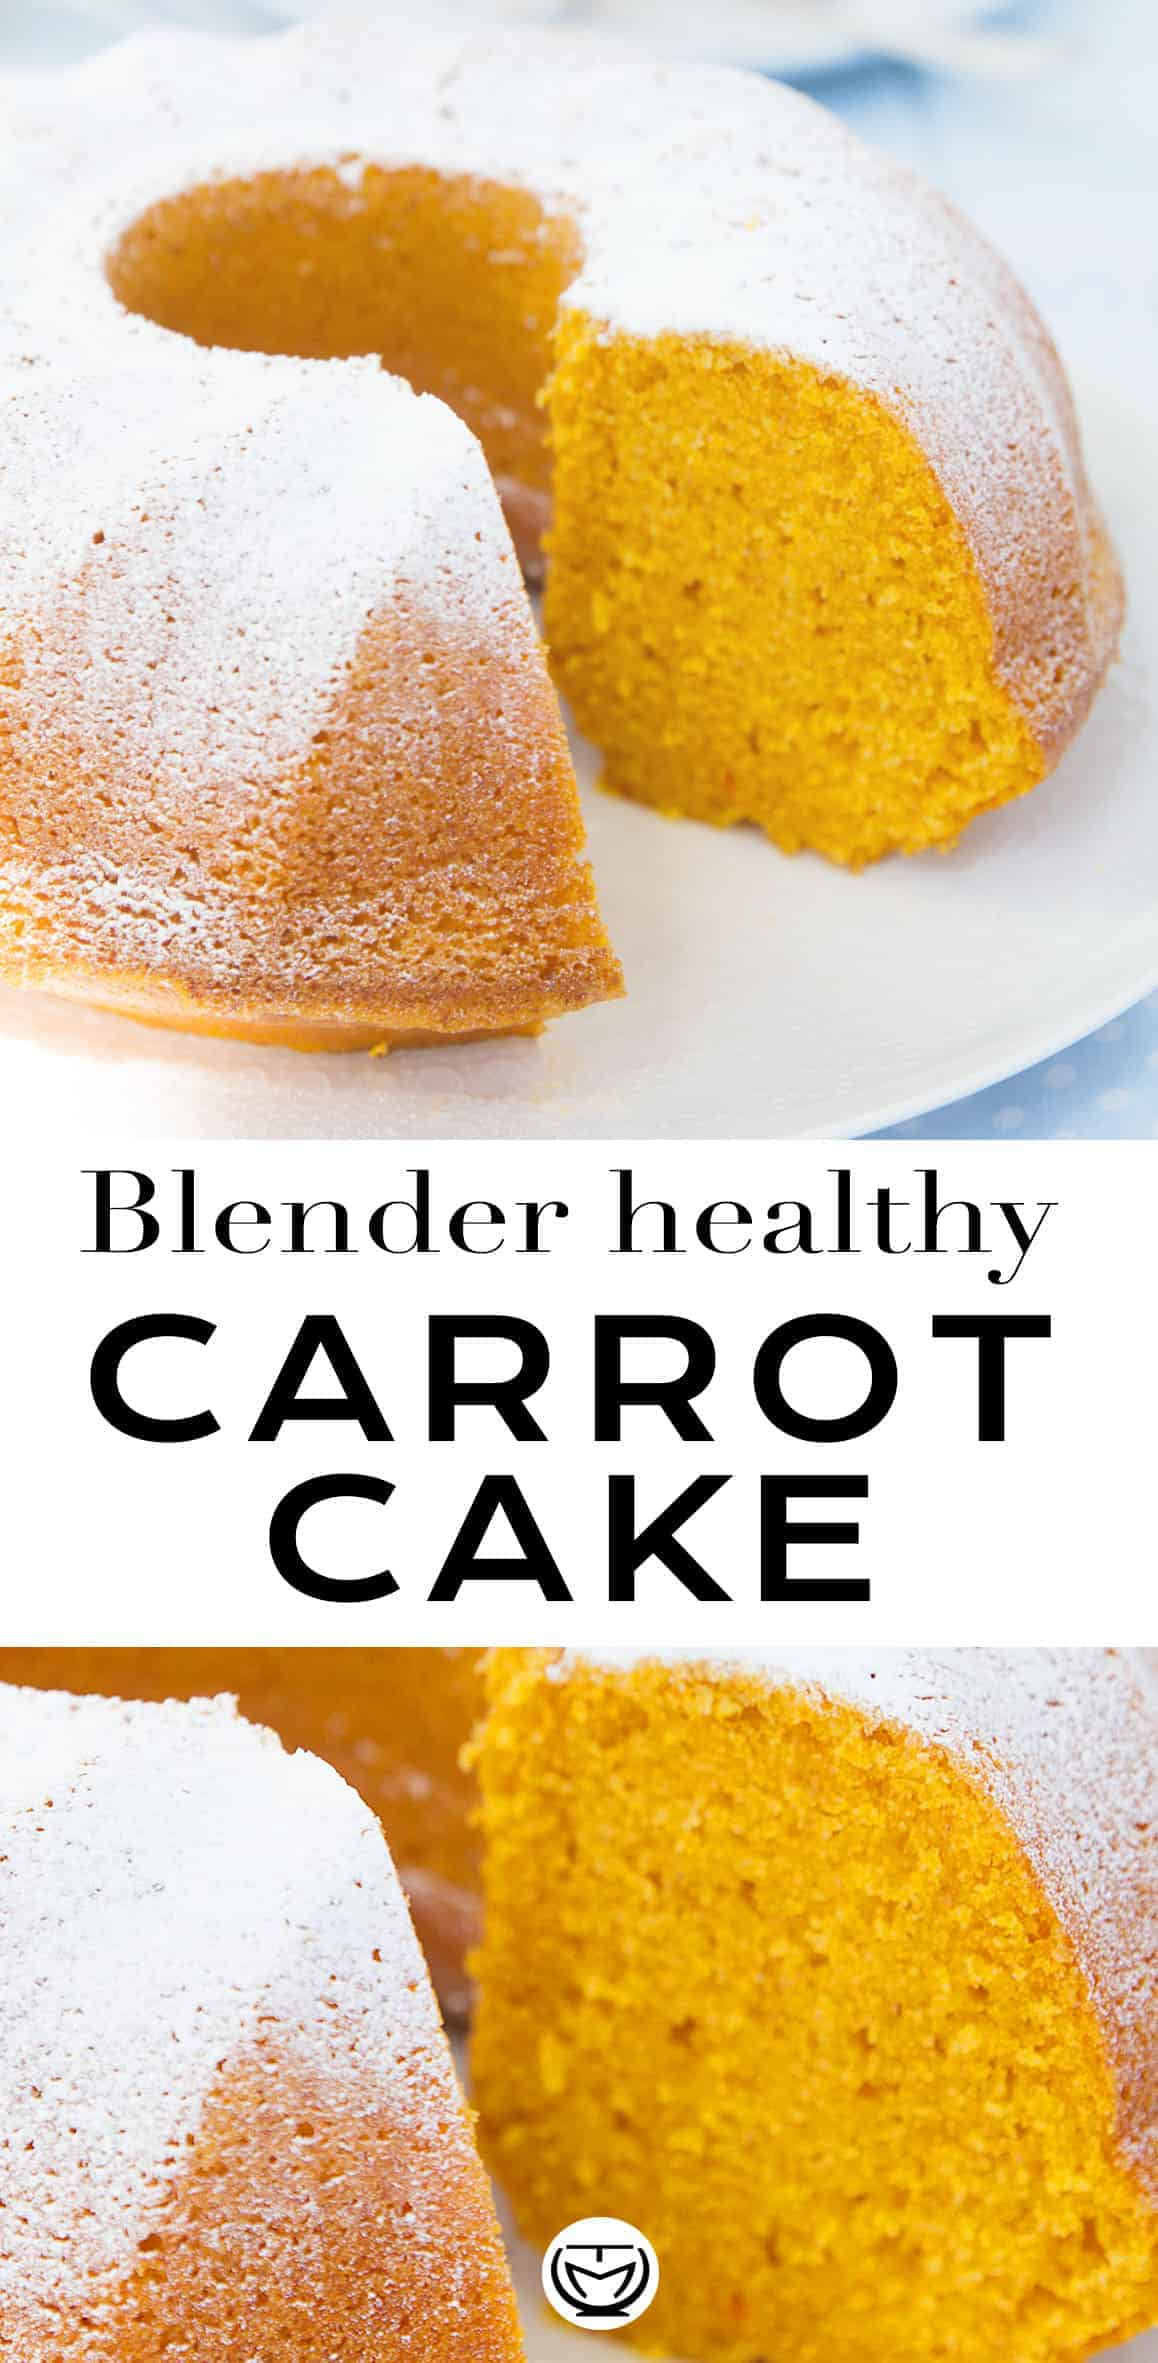 This is the easiest and super moist healthy carrot cake ever! A simply delicious, healthy and economical cake loaded with carrots. Not only is this cake light, melt in your mouth and not too sweet, but it's also fuss-free: blend all the ingredients and bake it! #blenderrecipes #carrotcake #healthyrecipes #easydesserts #healthycakerecipes